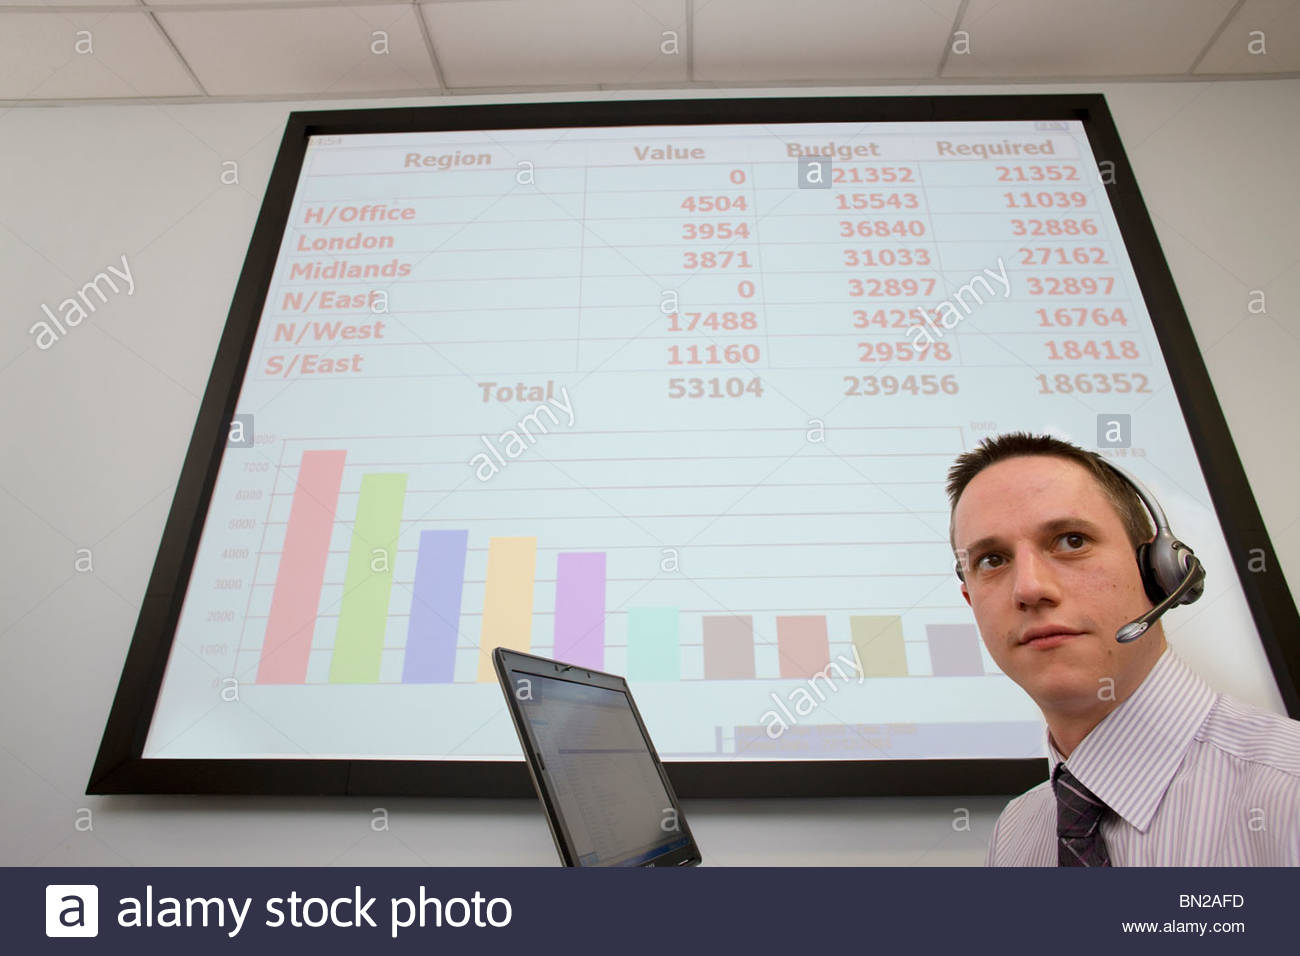 Businessman wearing headset and holding laptop below data on projection screen - Stock Image